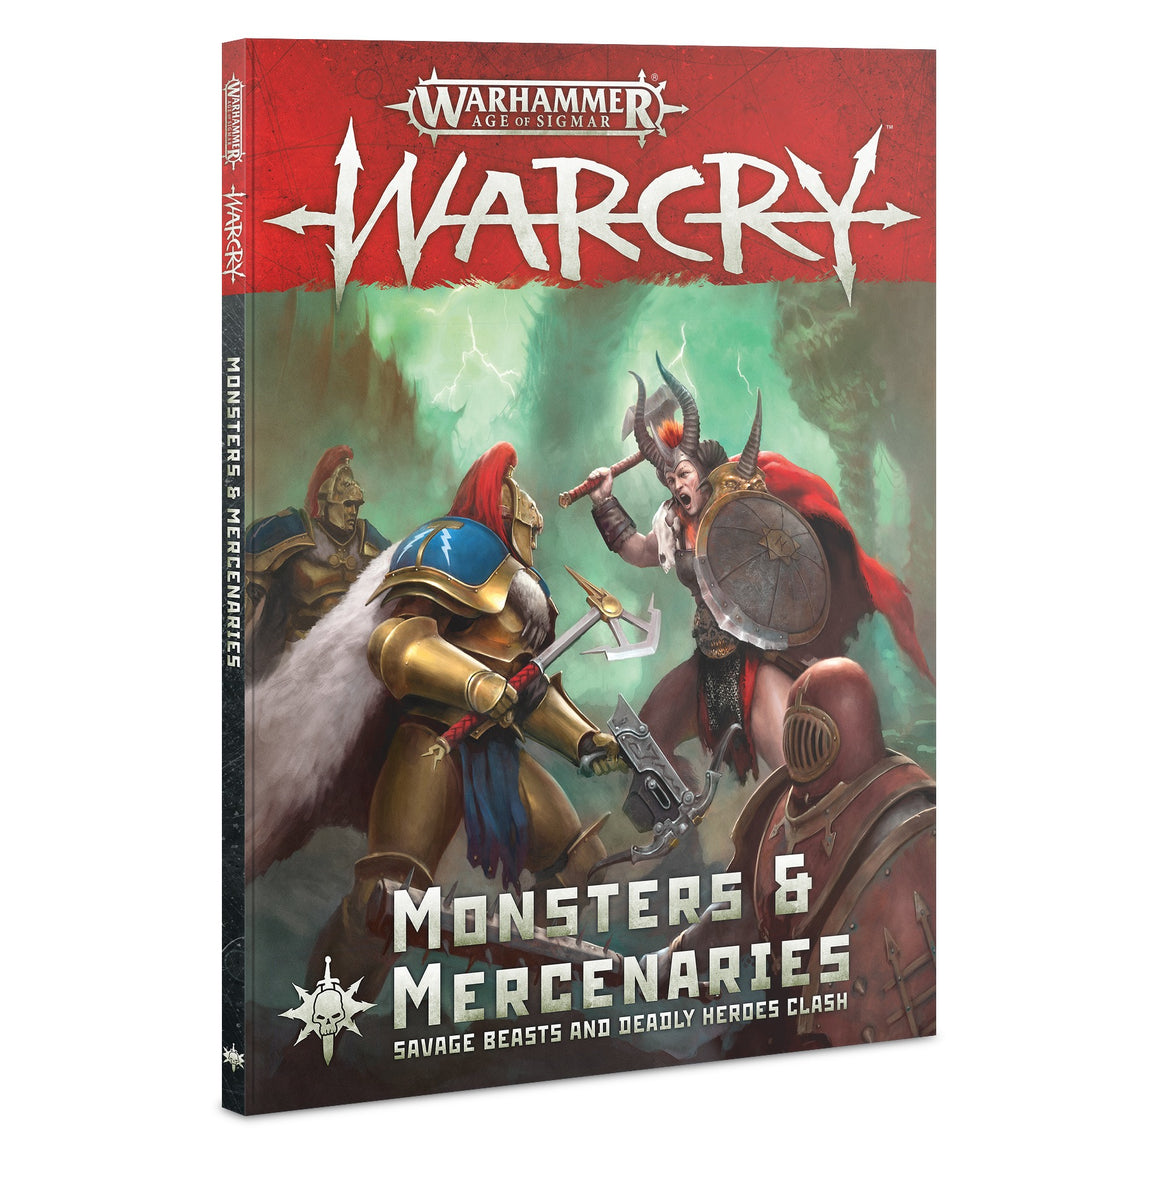 Warcry: Monsters & Mercenaries